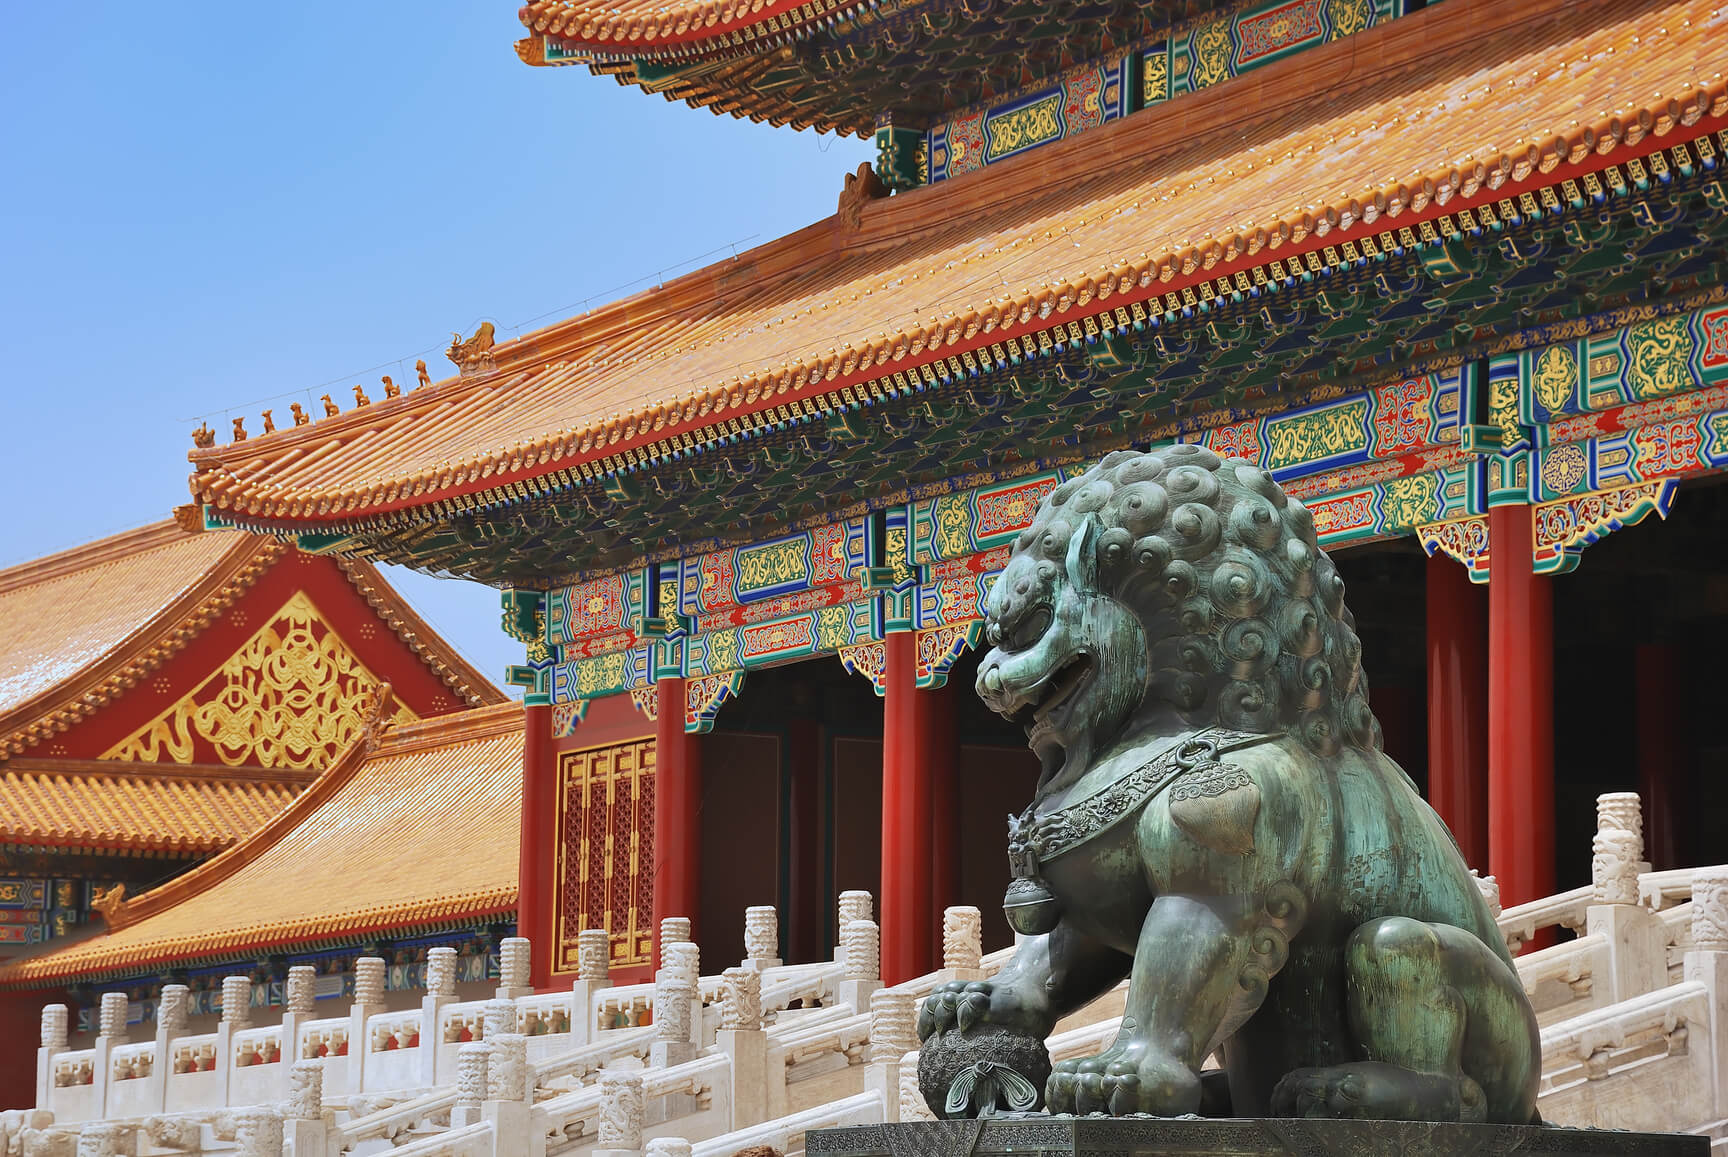 Los Angeles to Beijing, China for only $305 roundtrip